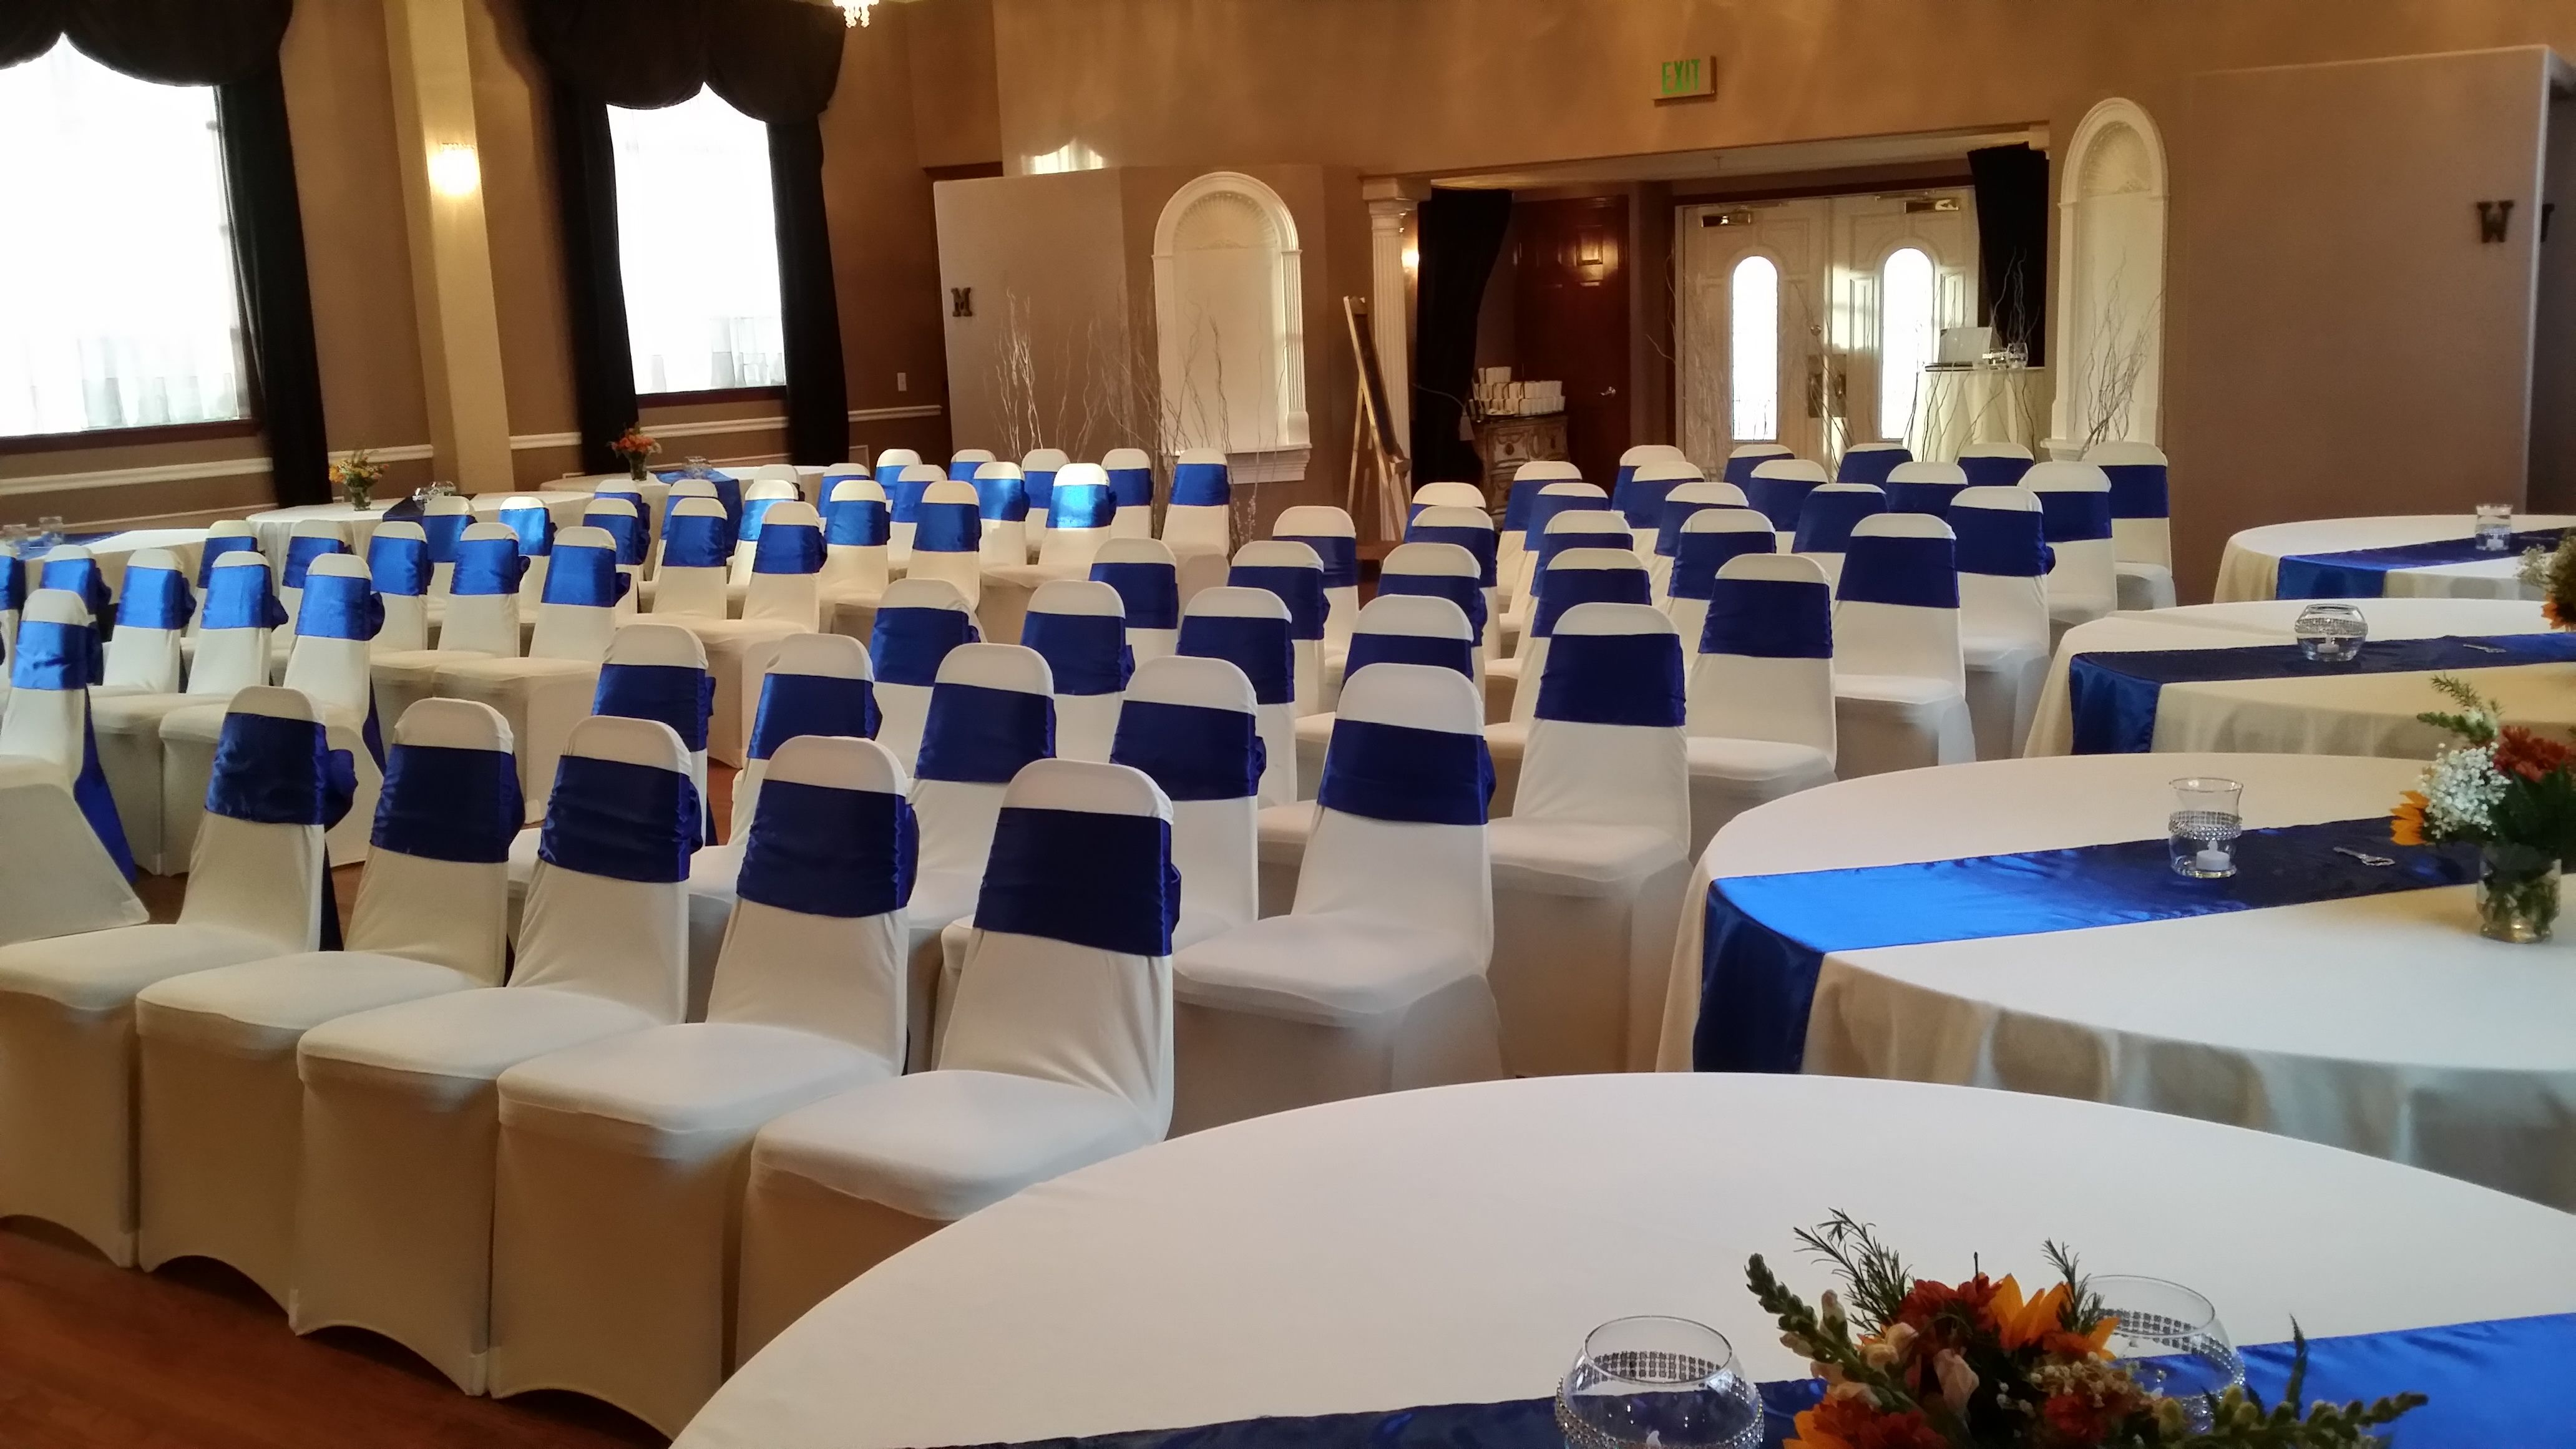 Wedding venue decorations ideas november 2018 The Antheia Ballroom  Seattle Venues The Blank Canvas  Pinterest